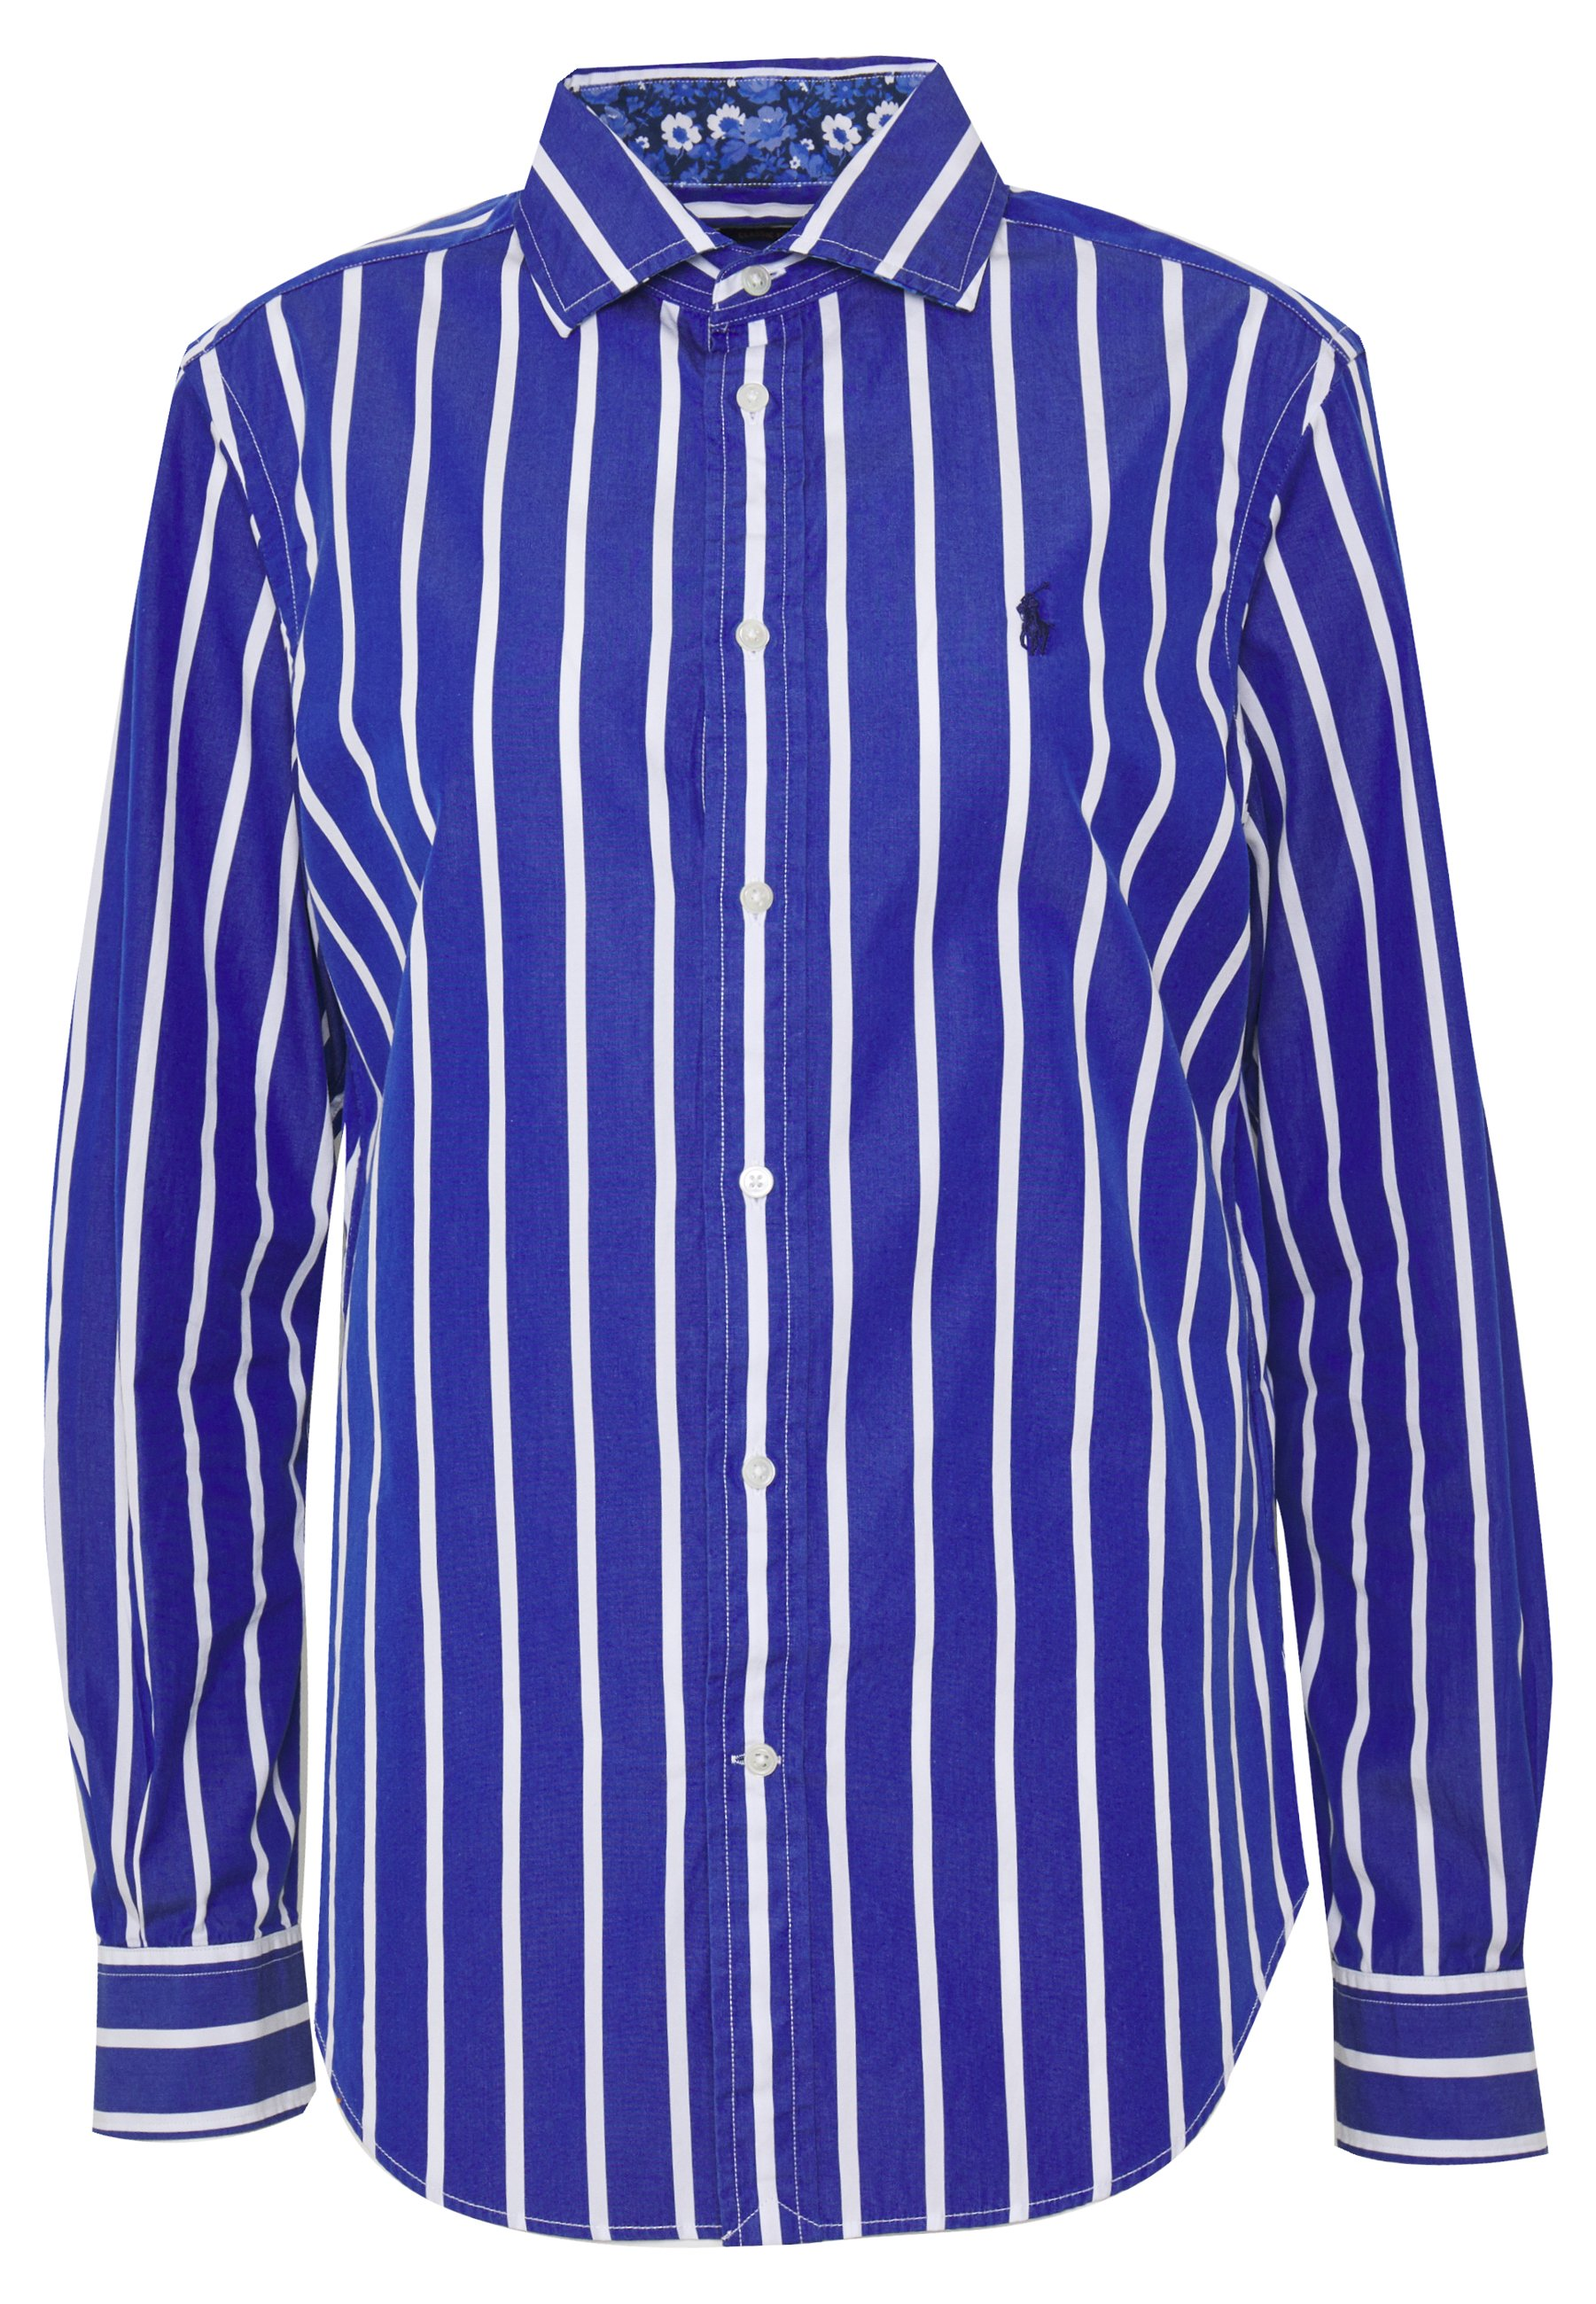 Polo Ralph Lauren Georgia Long Sleeve Shirt - Skjorta Blue/white